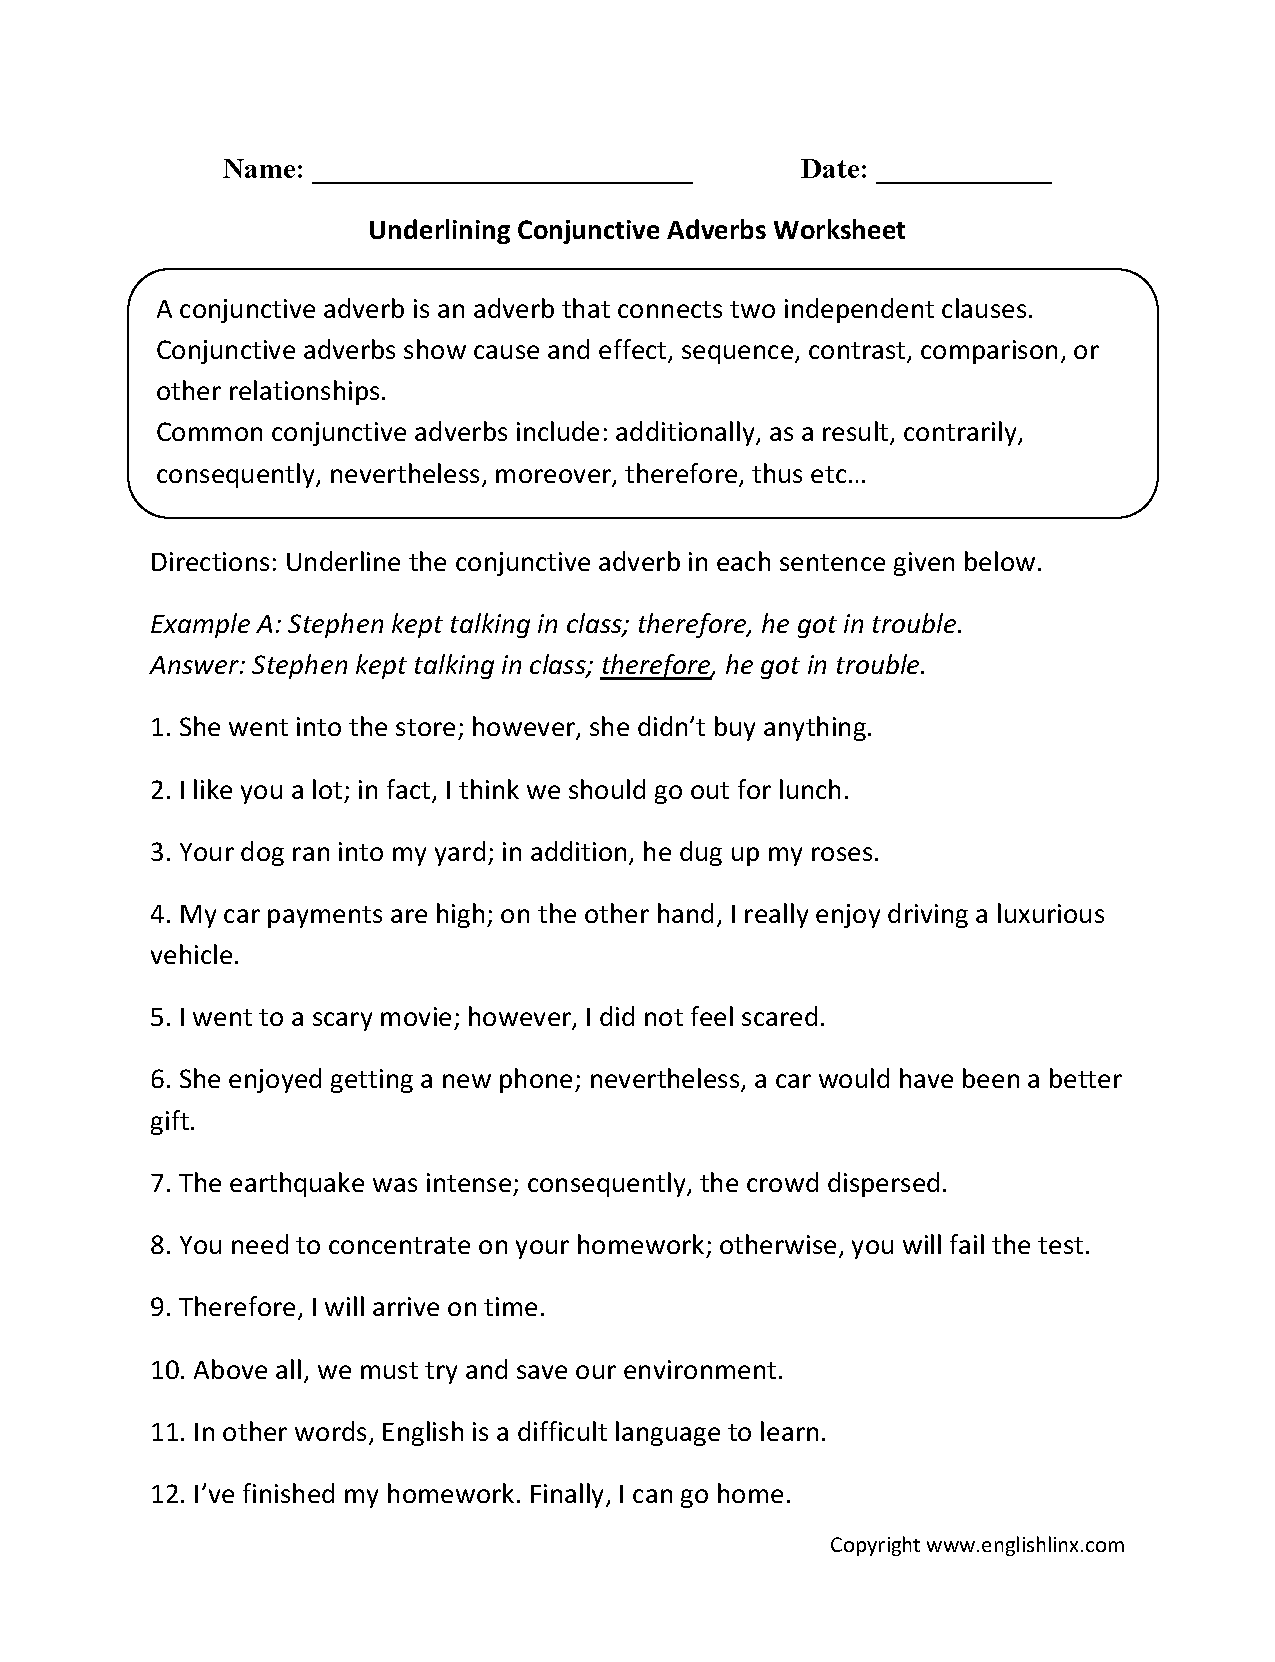 Weirdmailus  Personable Englishlinxcom  Conjunctions Worksheets With Fair Worksheet With Archaic Printable High School Math Worksheets Also Outer Planets Worksheet In Addition Two Column Proofs Worksheets And Activation Energy Worksheet As Well As Number  Worksheets For Preschoolers Additionally Monthly Income And Expense Worksheet From Englishlinxcom With Weirdmailus  Fair Englishlinxcom  Conjunctions Worksheets With Archaic Worksheet And Personable Printable High School Math Worksheets Also Outer Planets Worksheet In Addition Two Column Proofs Worksheets From Englishlinxcom